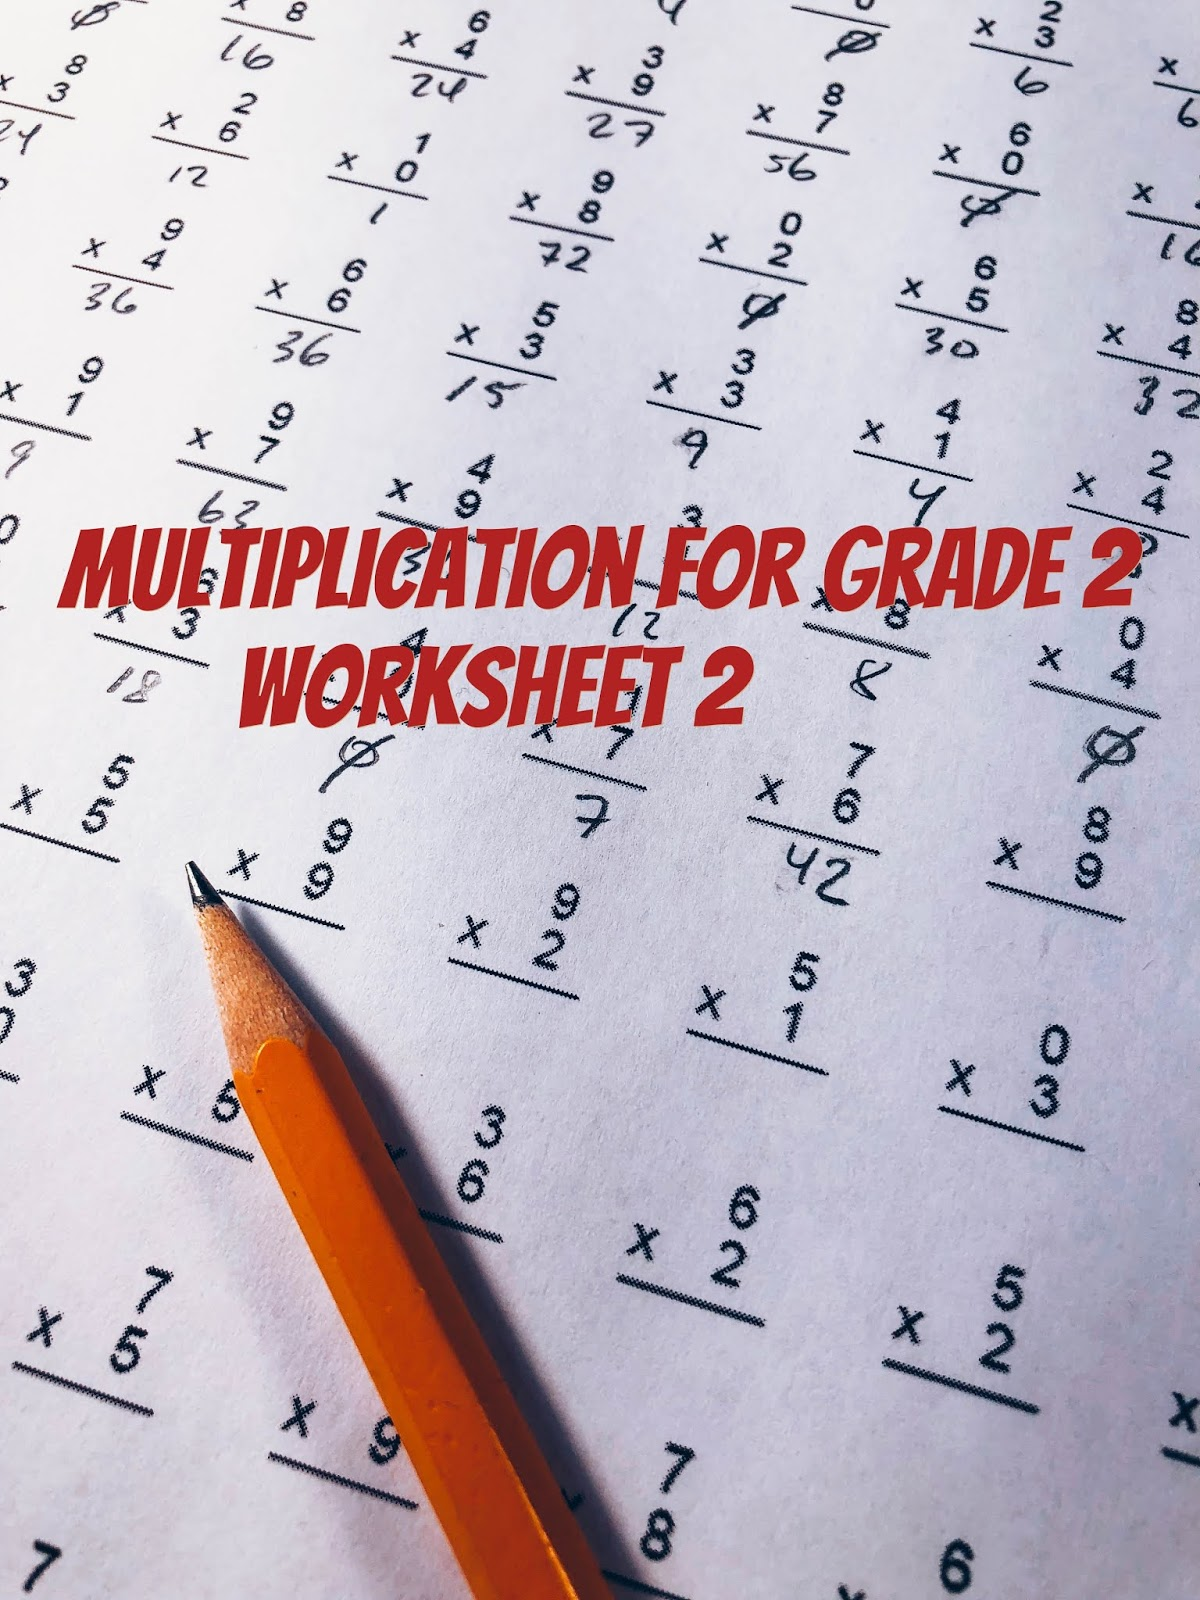 medium resolution of Math Quiz Multiplication worksheet 2 for grade 2 (Questions and Answers)